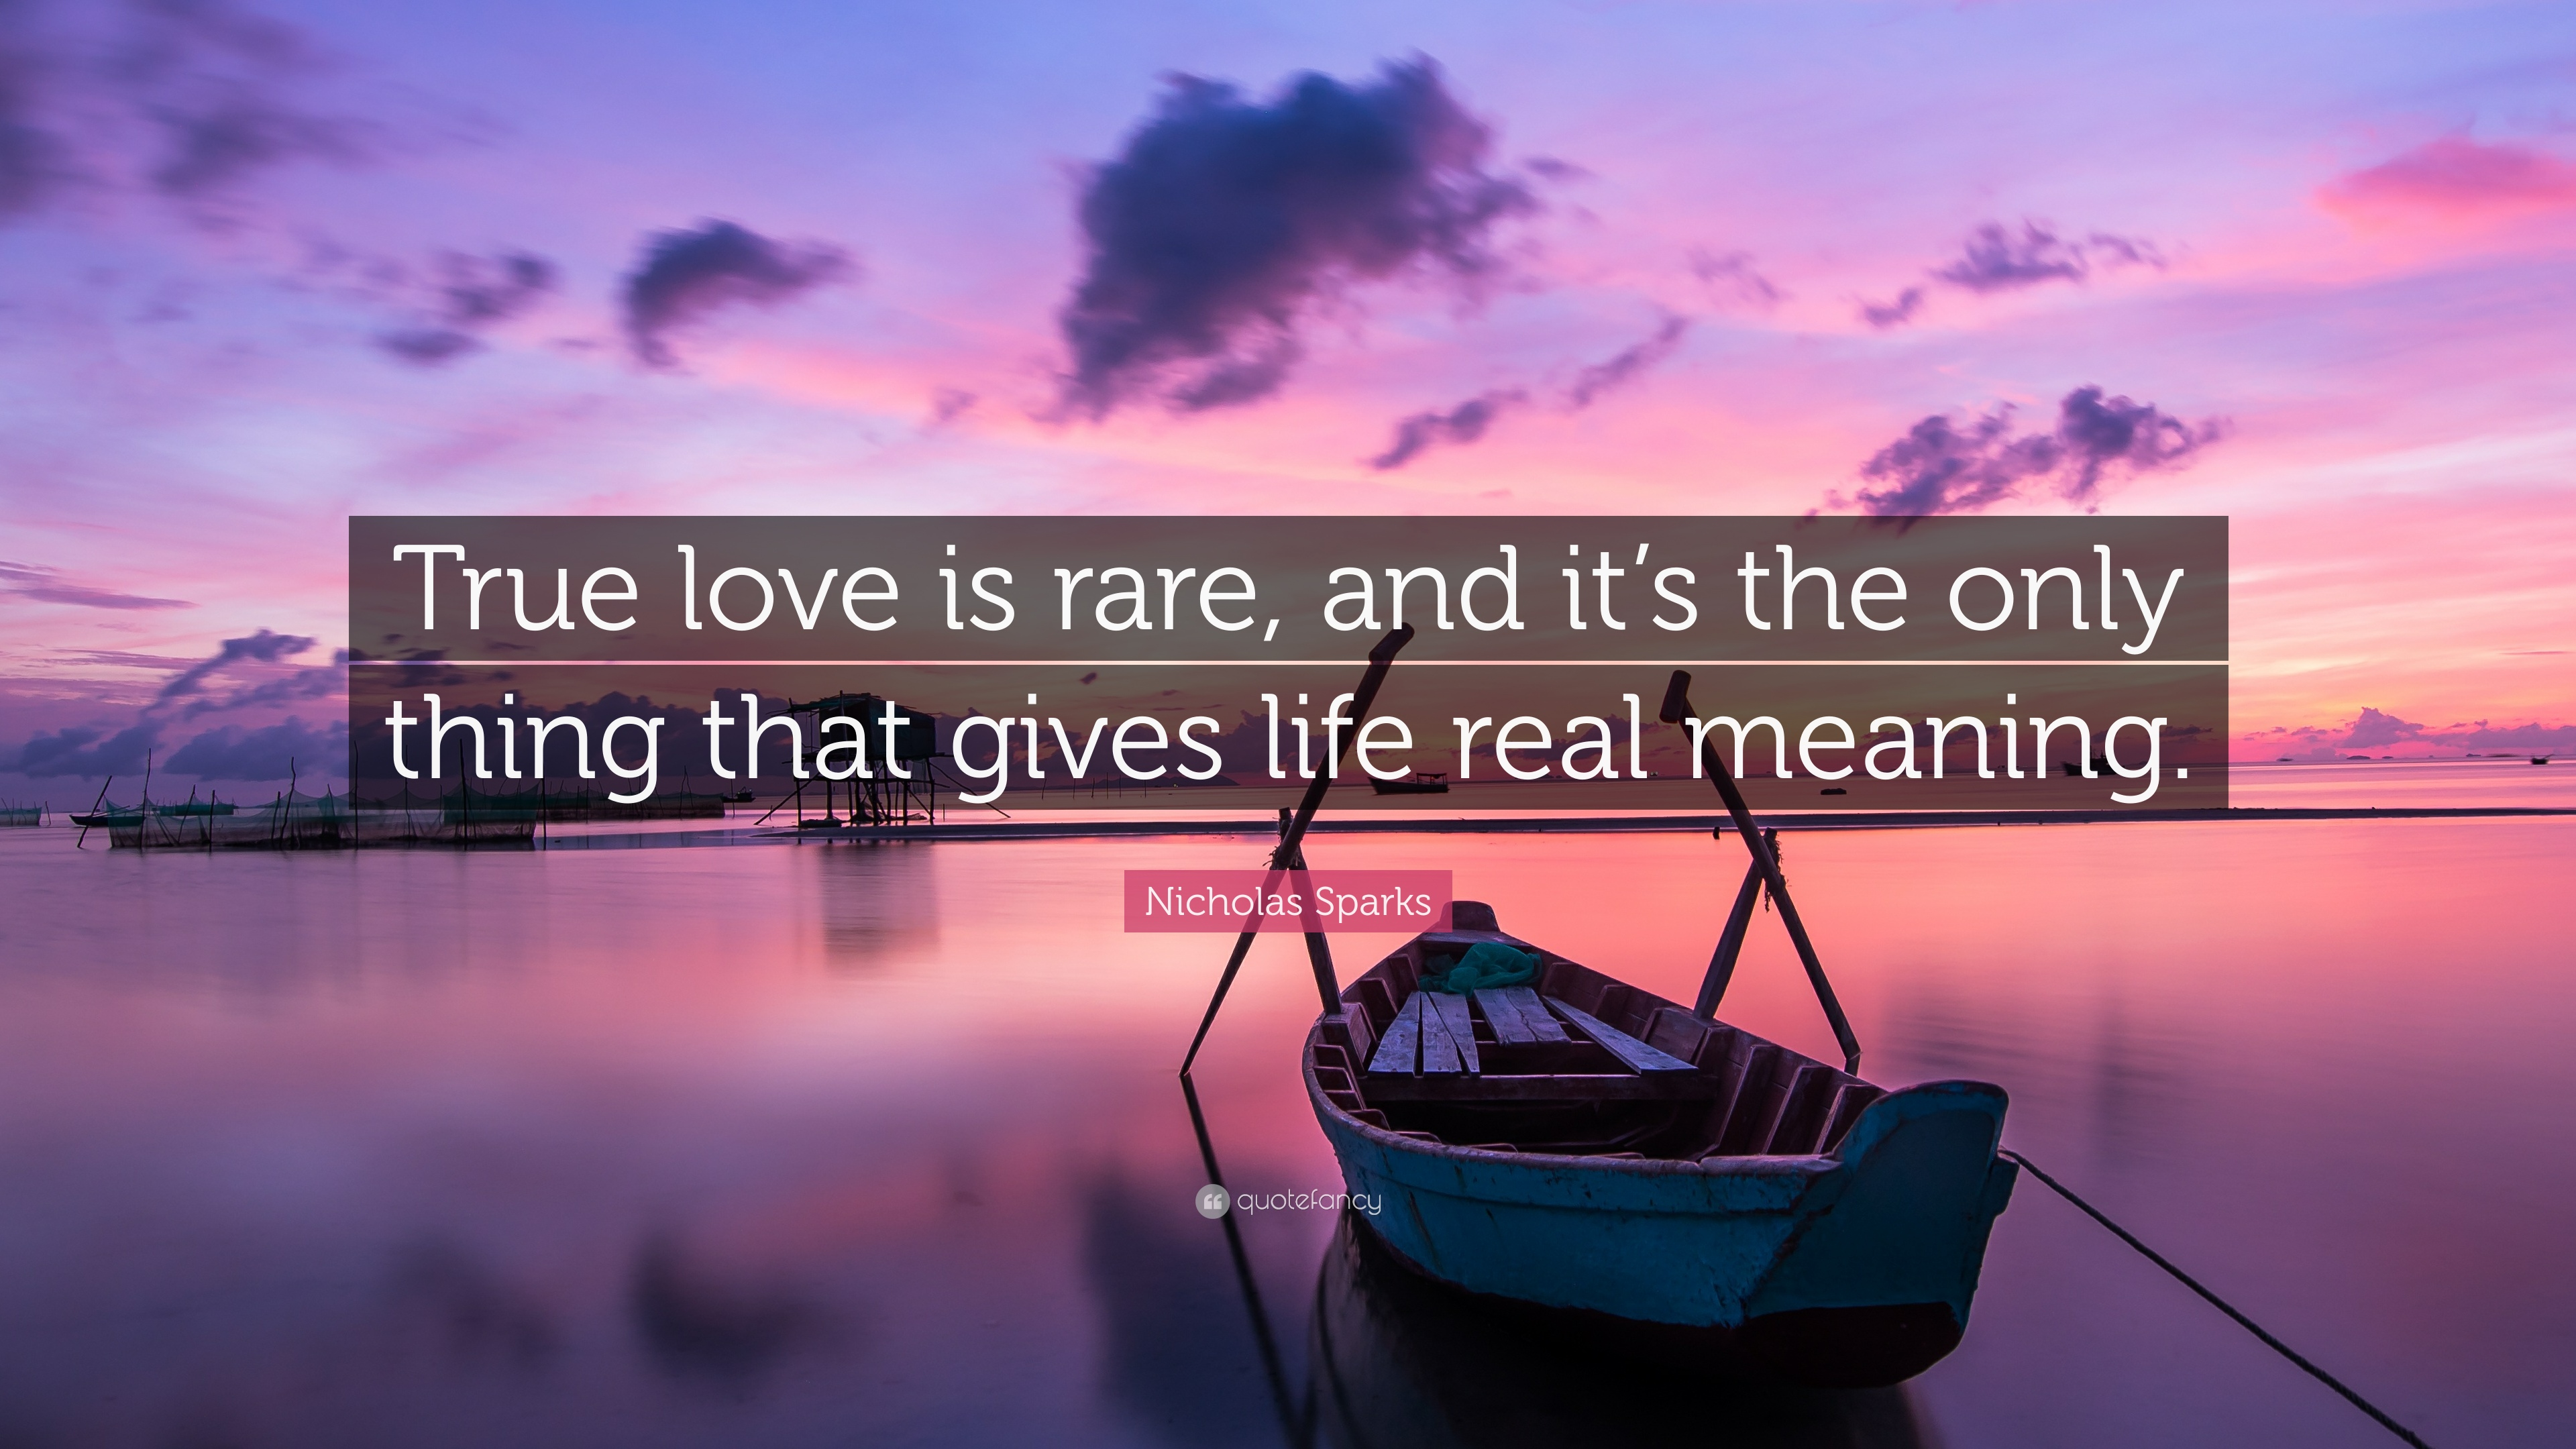 Nicholas Sparks Quote True Love Is Rare And Its The Only Thing